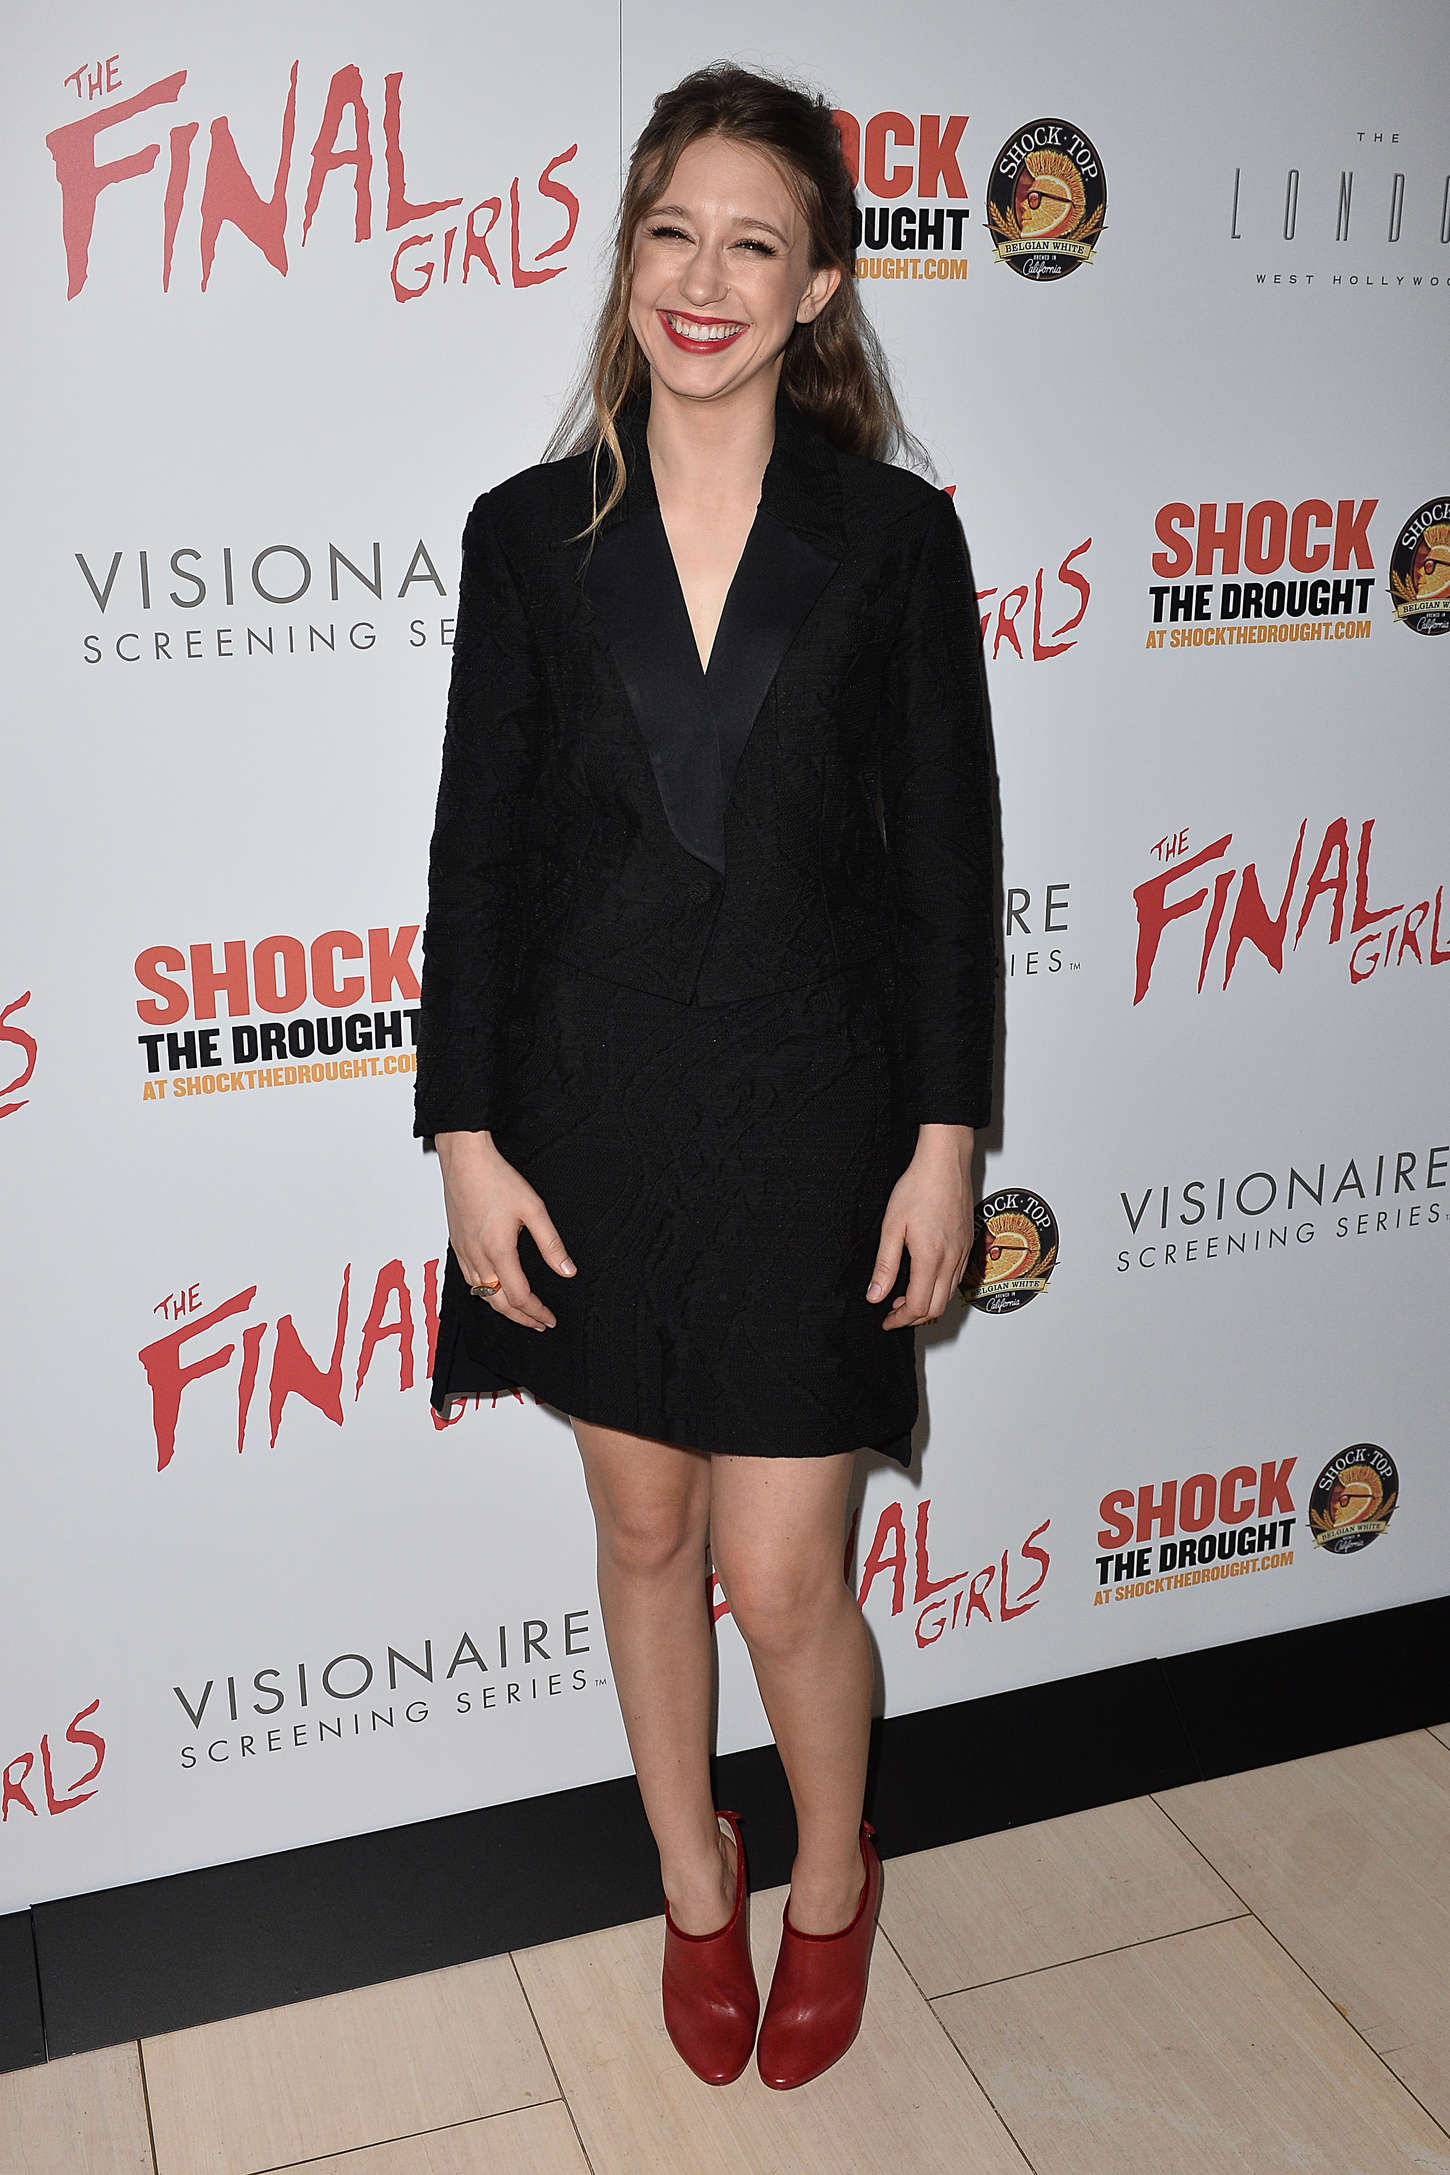 Taissa Farmiga The Final Girls Premiere in West Hollywood